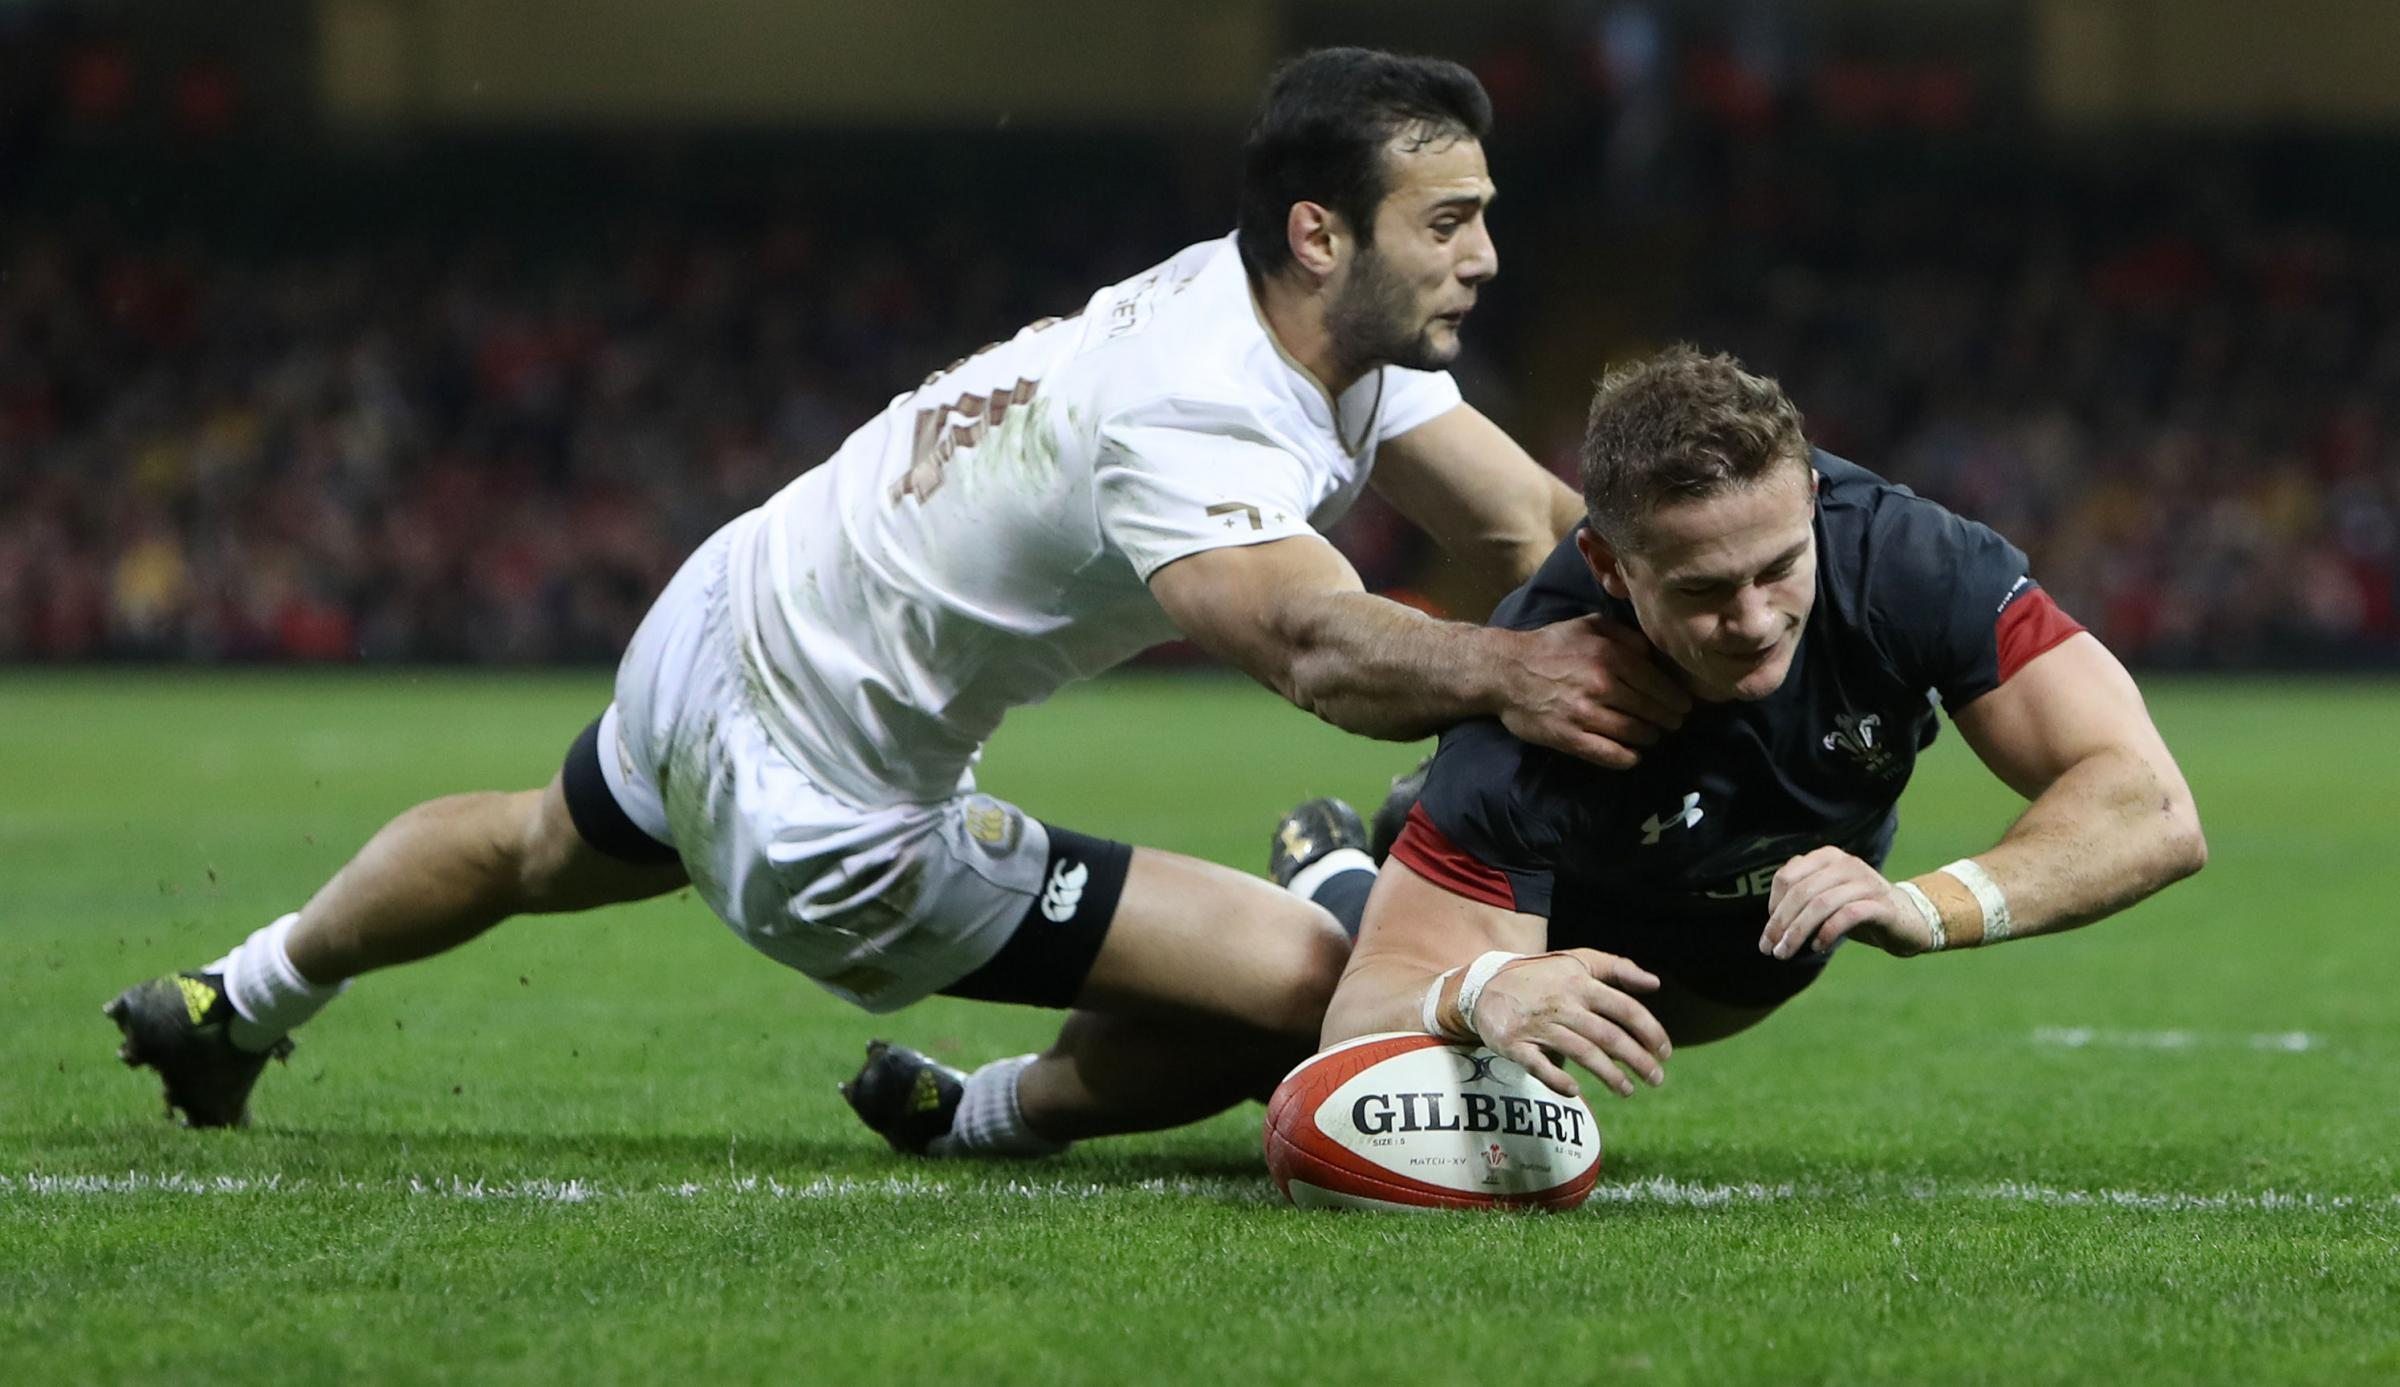 Six dragons receive the call to Wales for six nations - South Wales Argus